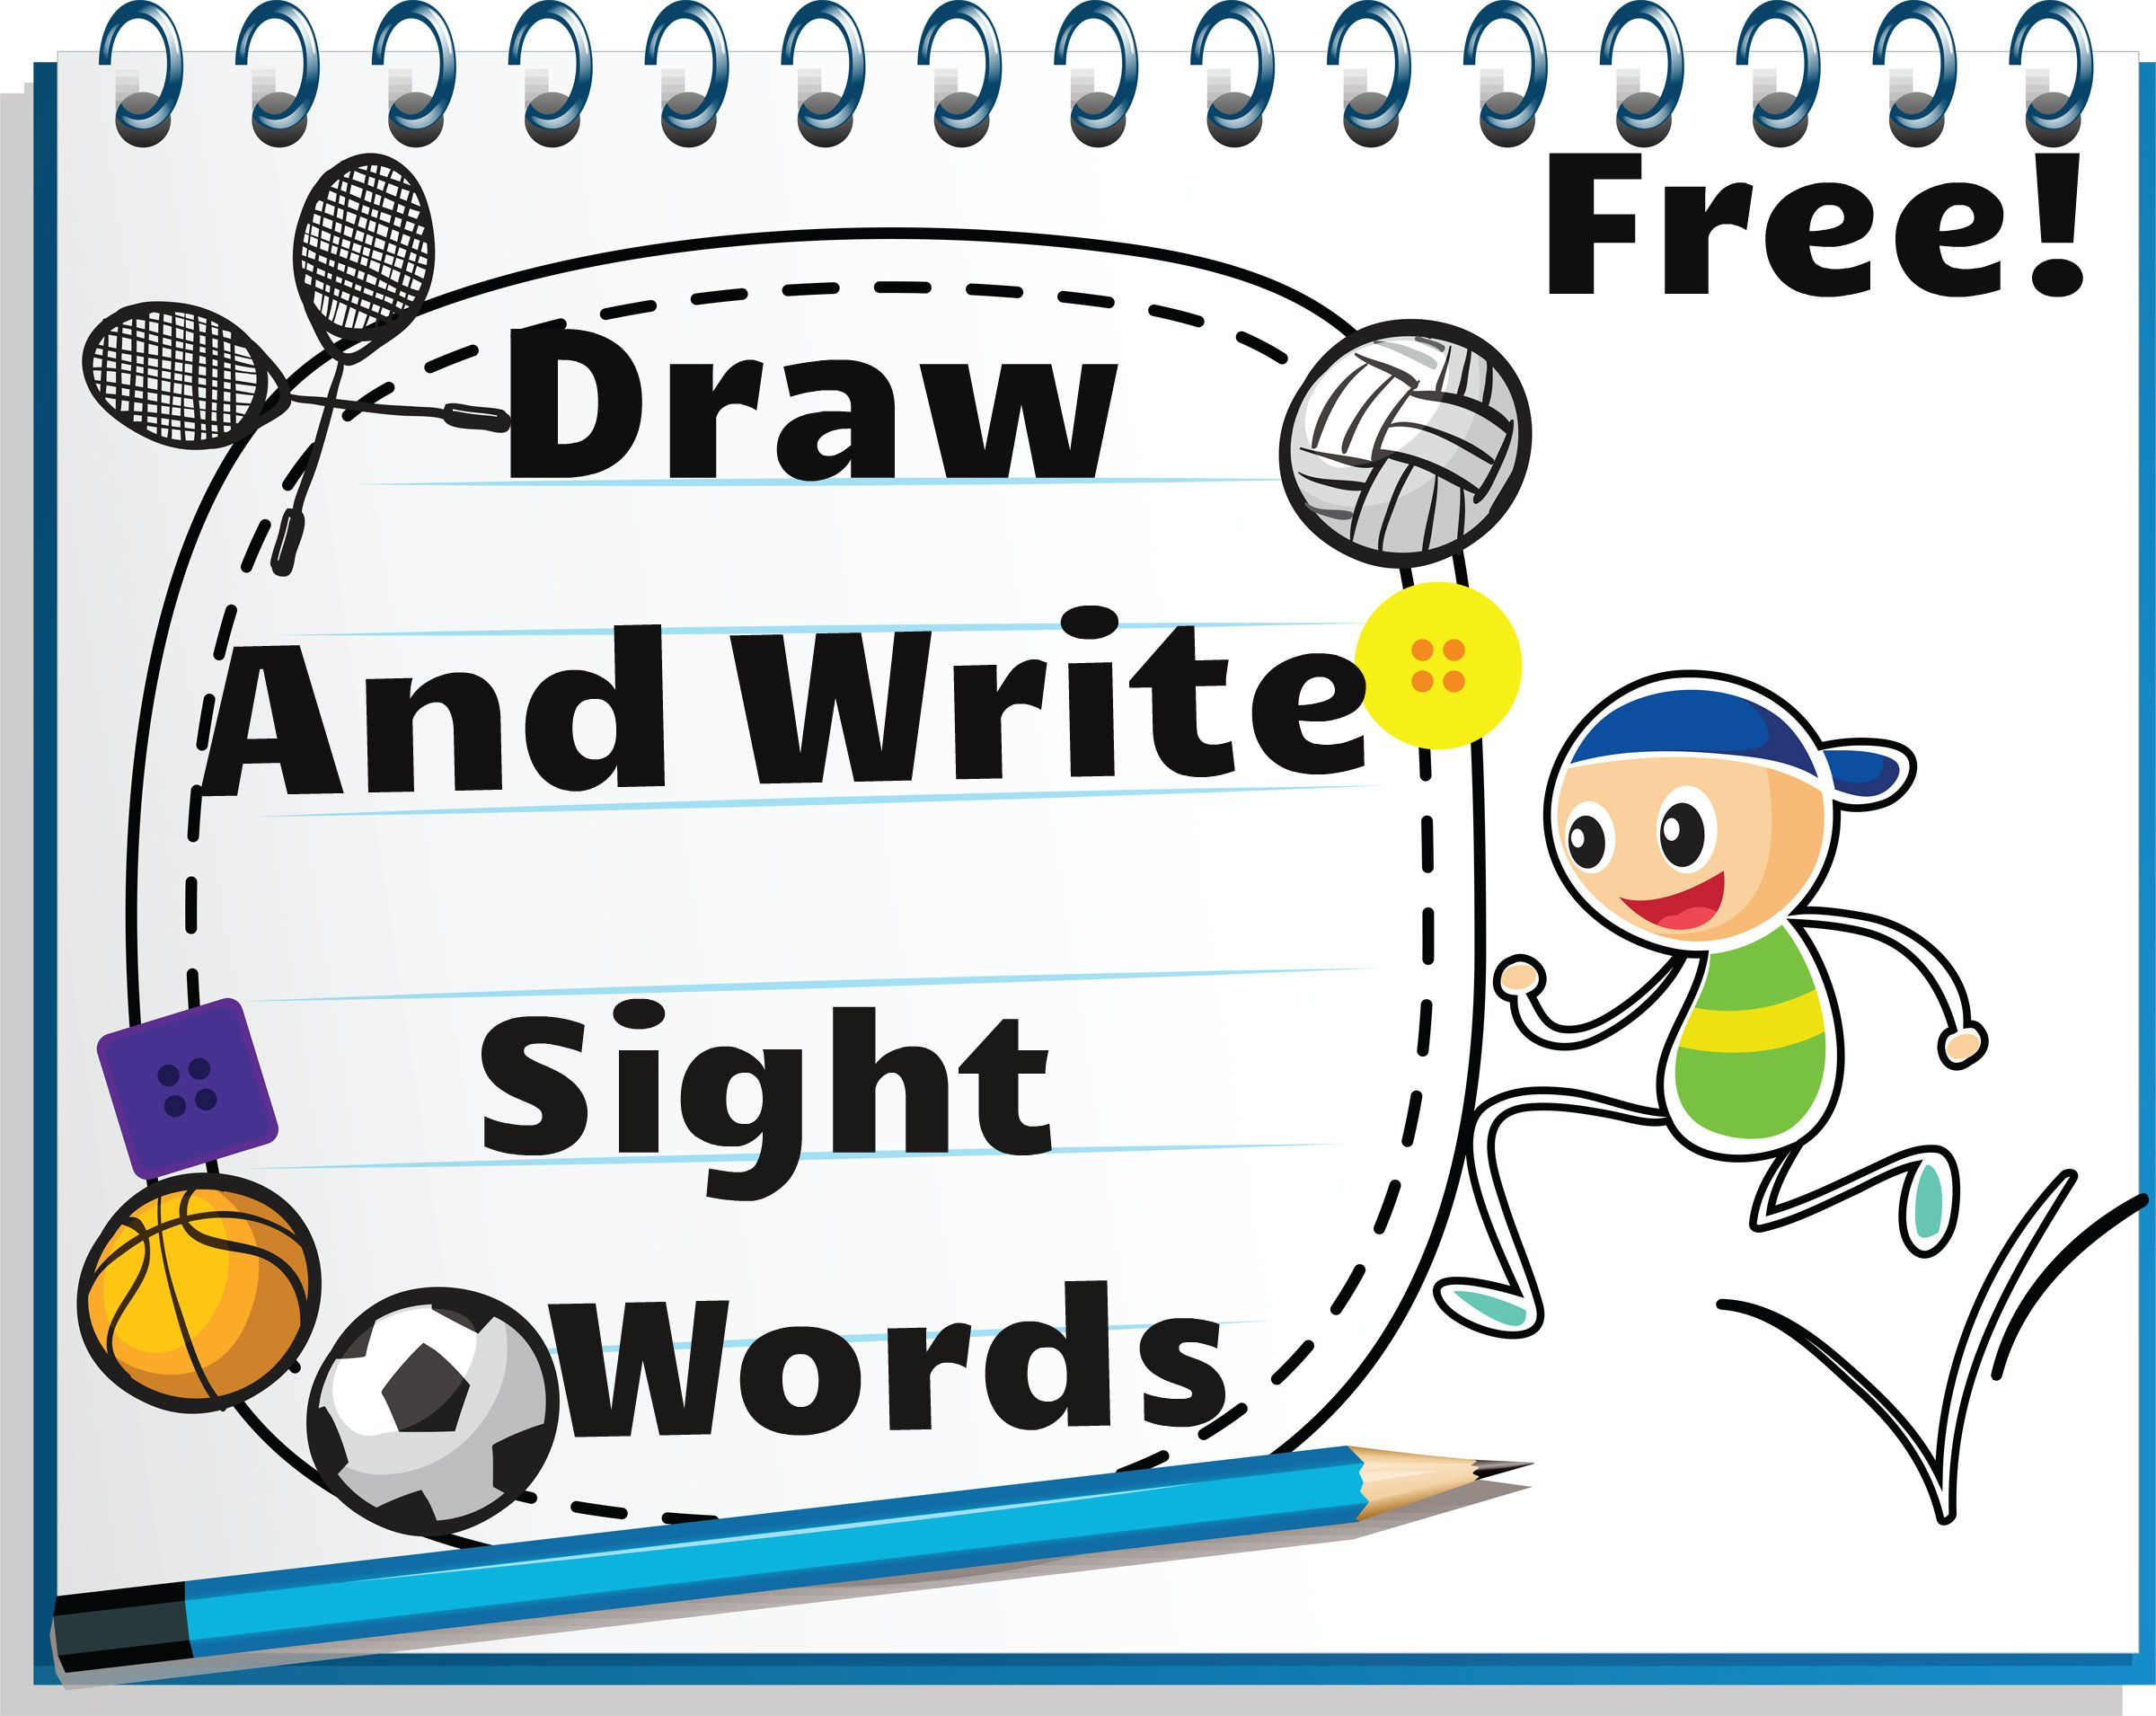 Draw And Write Sight Words Worksheets Great Resource To Teach Sight Words In The Context O Sight Words Kindergarten Preschool Sight Words Learning Sight Words [ 1910 x 2400 Pixel ]